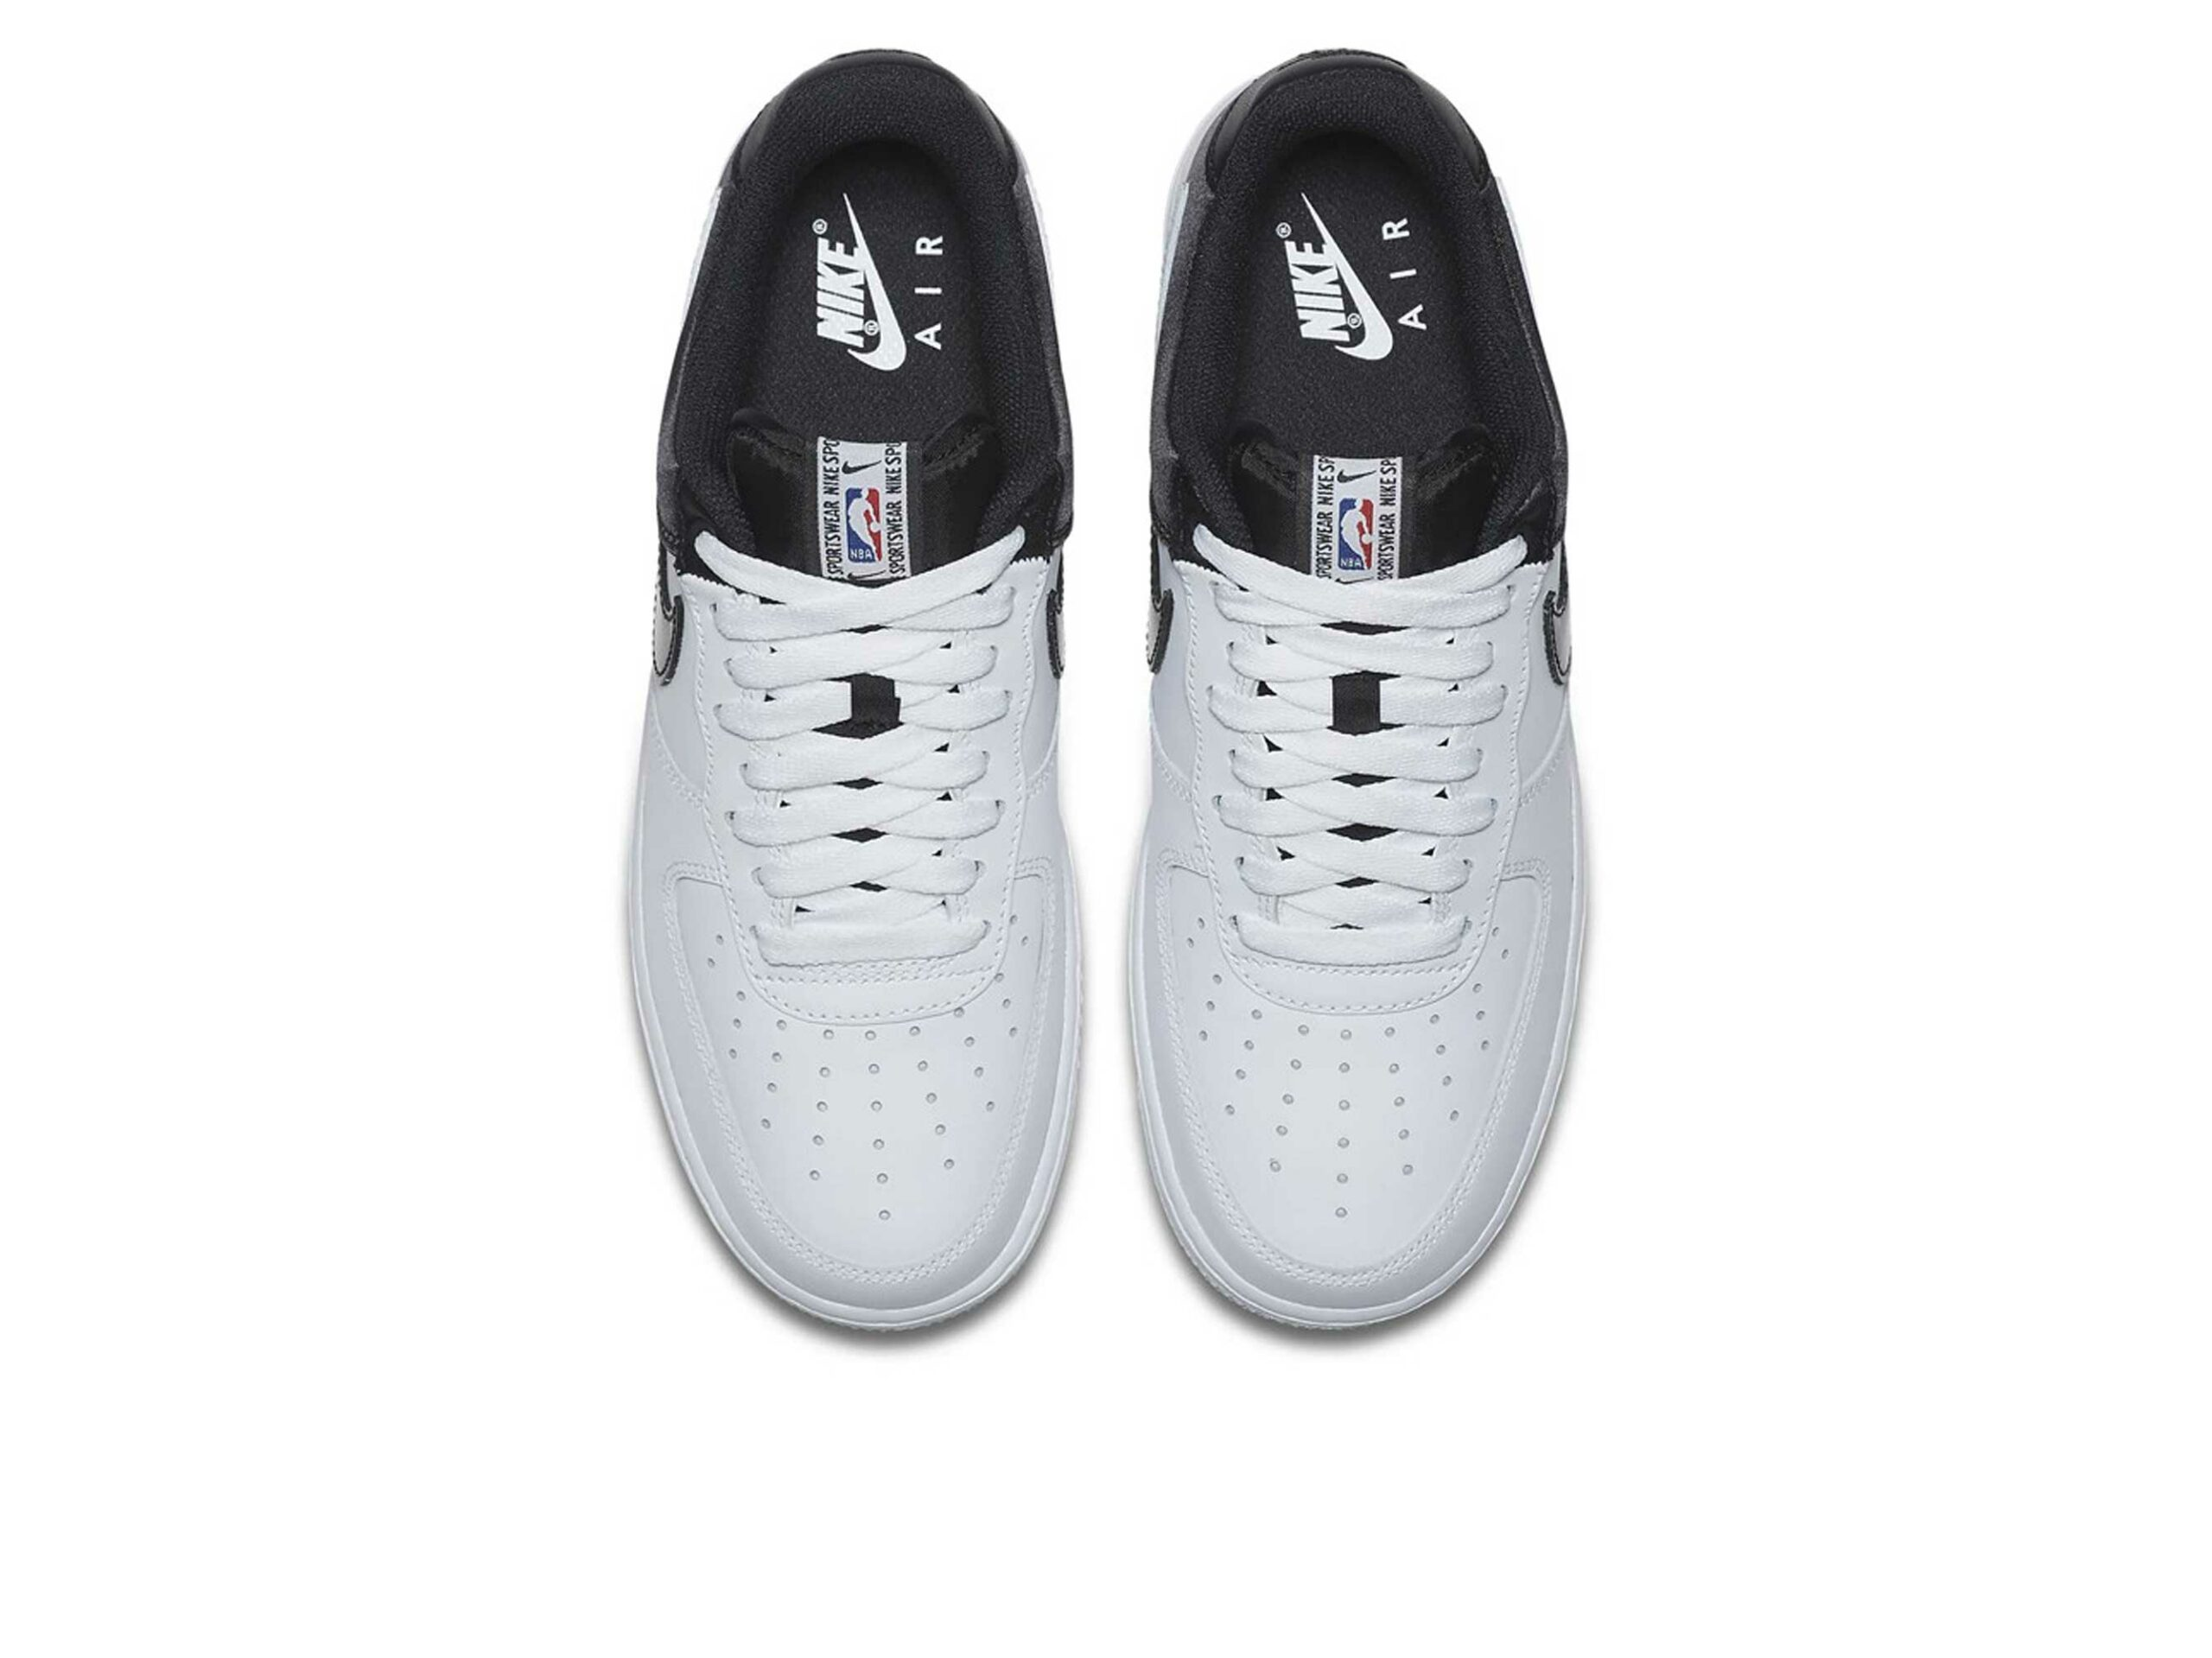 Nike Air Force 1 Nba from Jd Sports on 21 Buttons